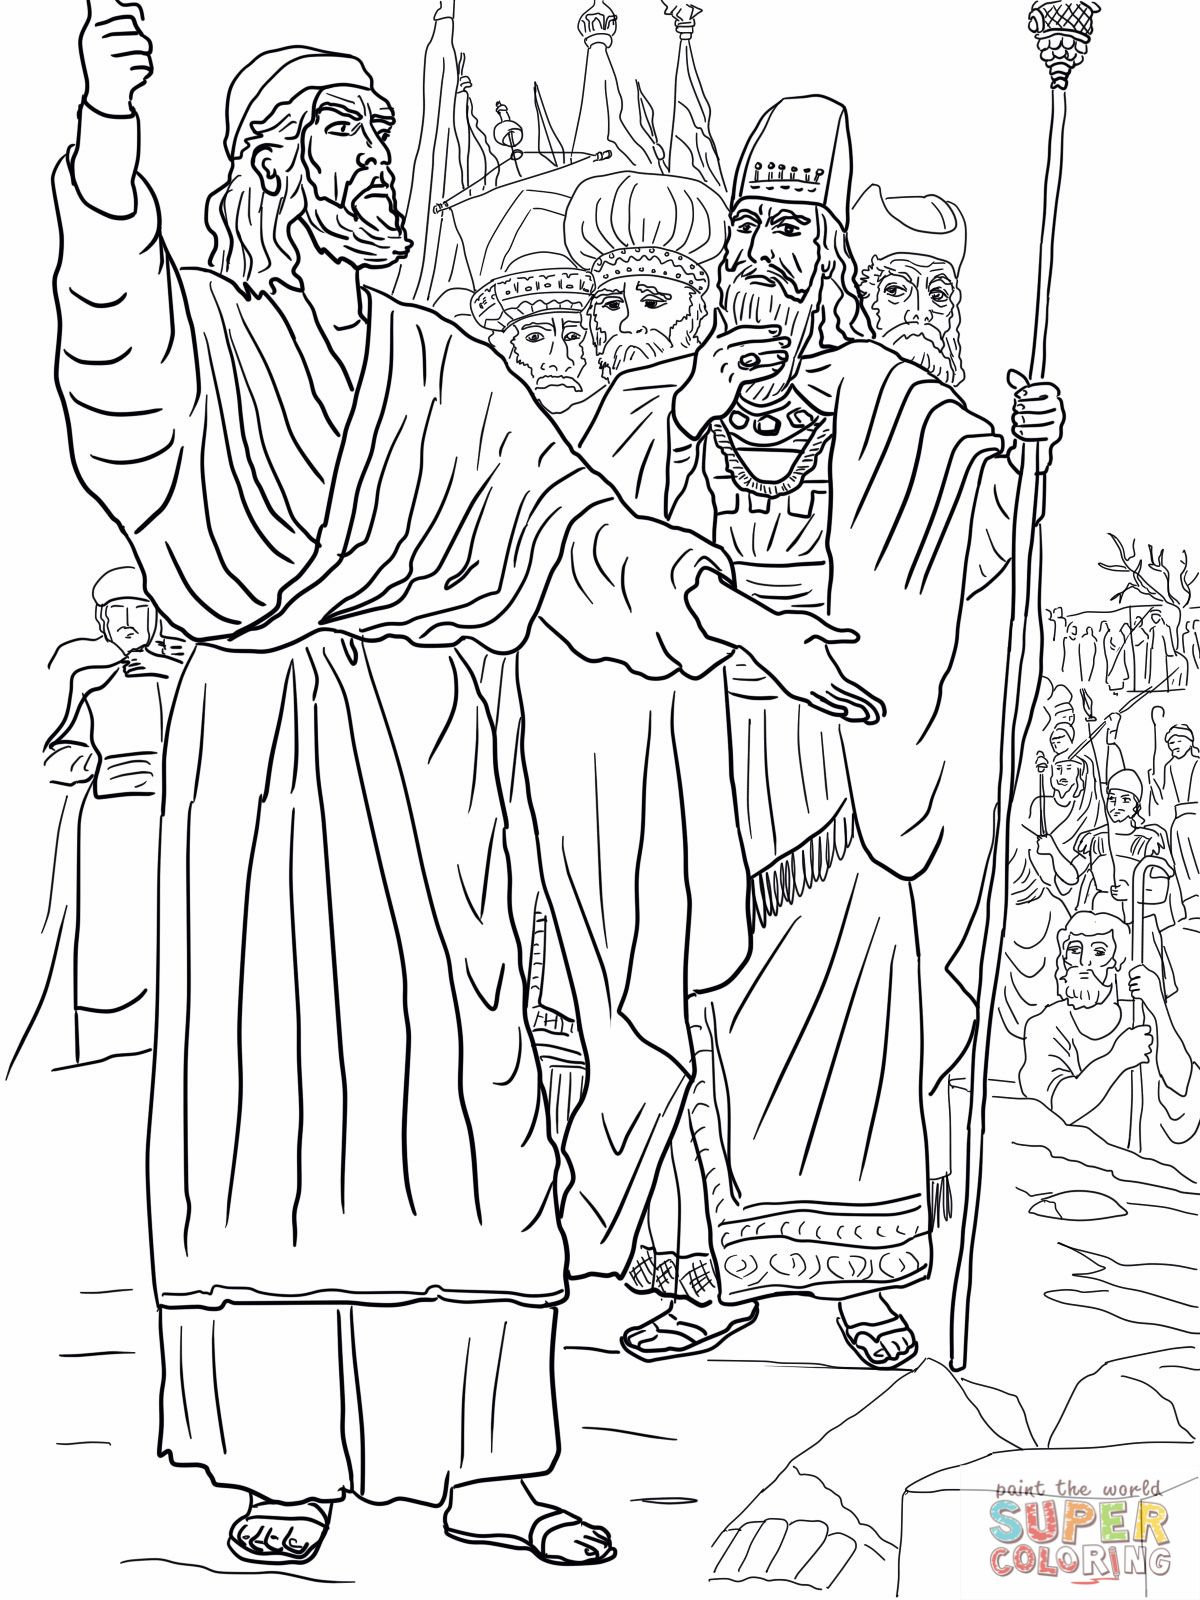 elijah and baal coloring page - baal of the bible coloring pages coloring page elijah